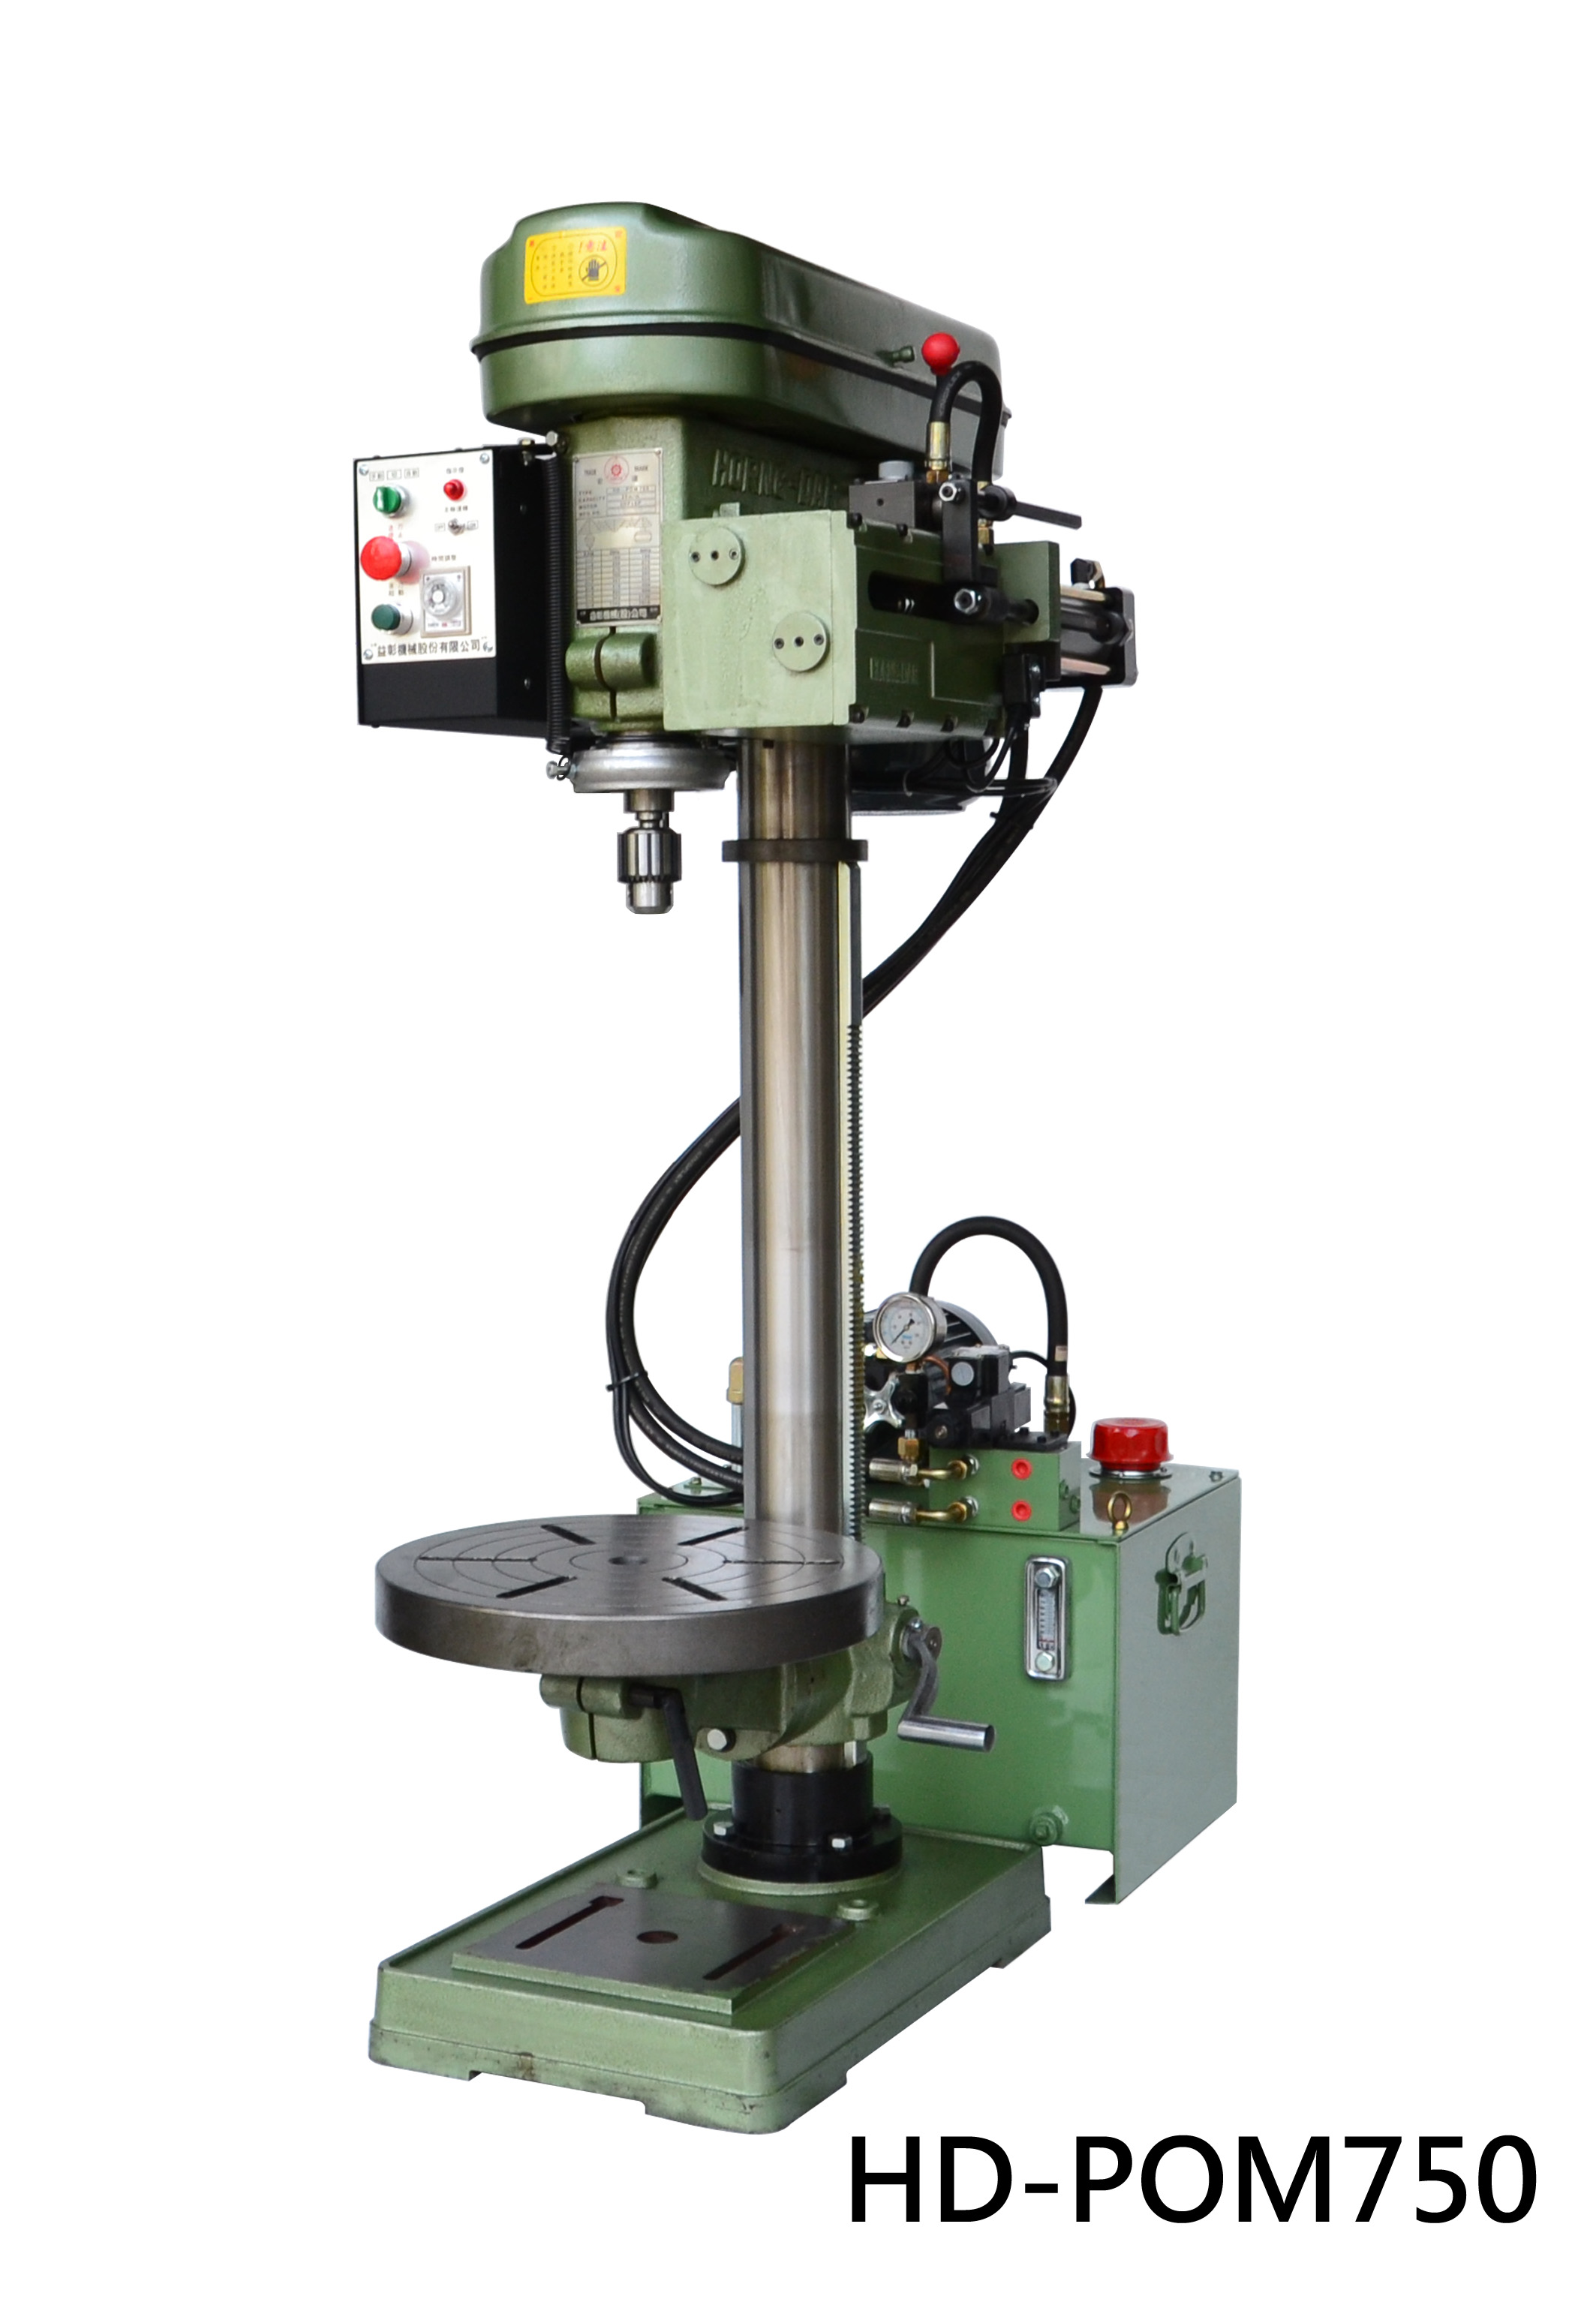 Machine Hydraulic Details About Bench Drill Press Machine Hydraulic Automatic 35mm 1 3 8